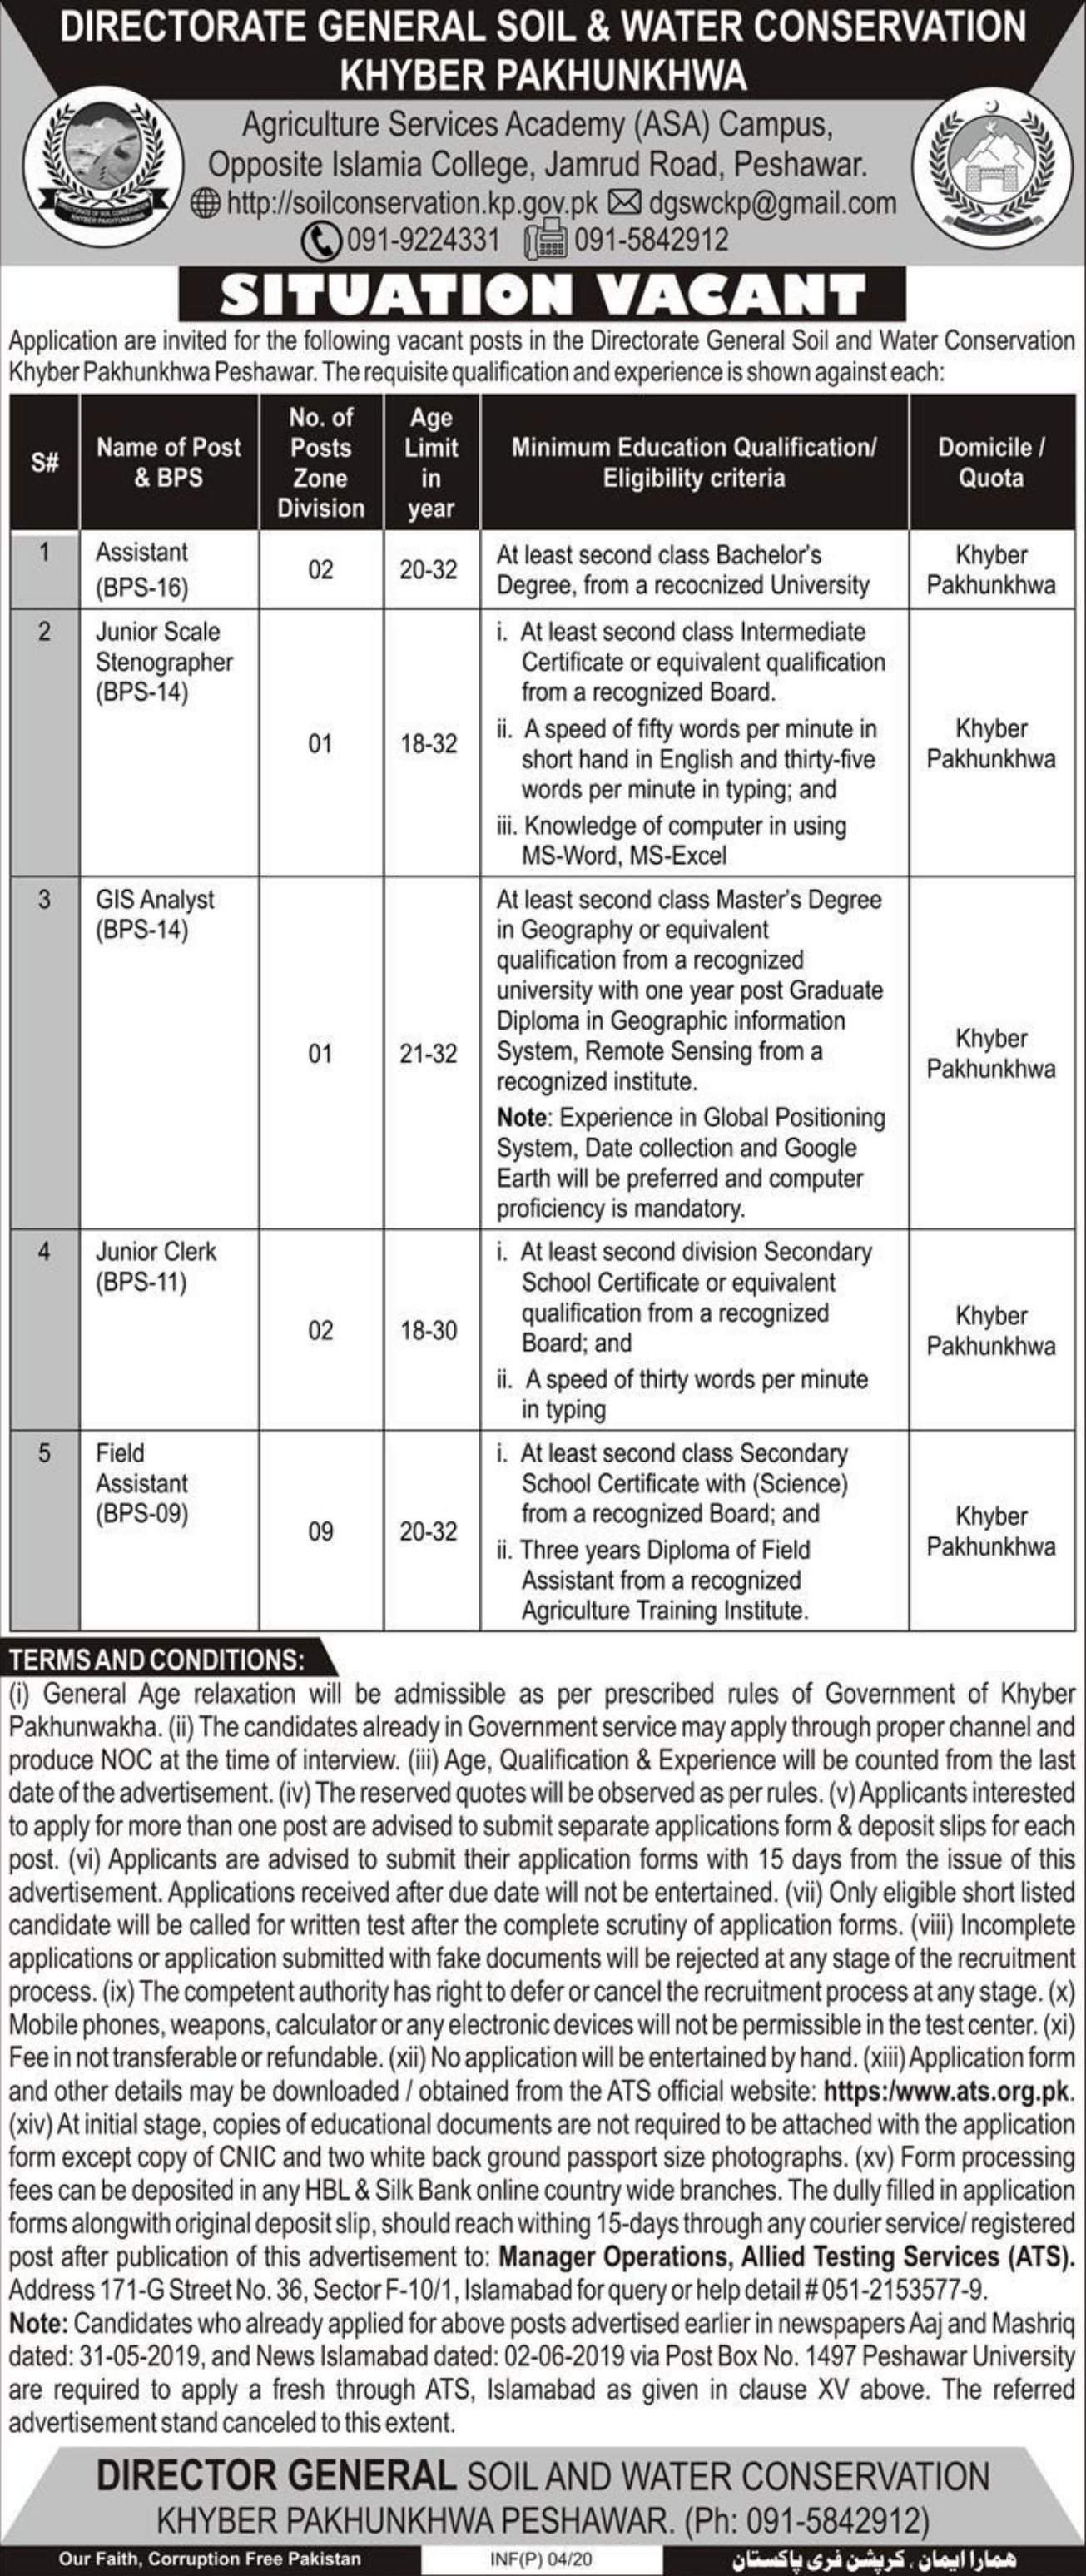 Directorate General Soil & Water Conservation Peshawar Jobs 2020 KPK